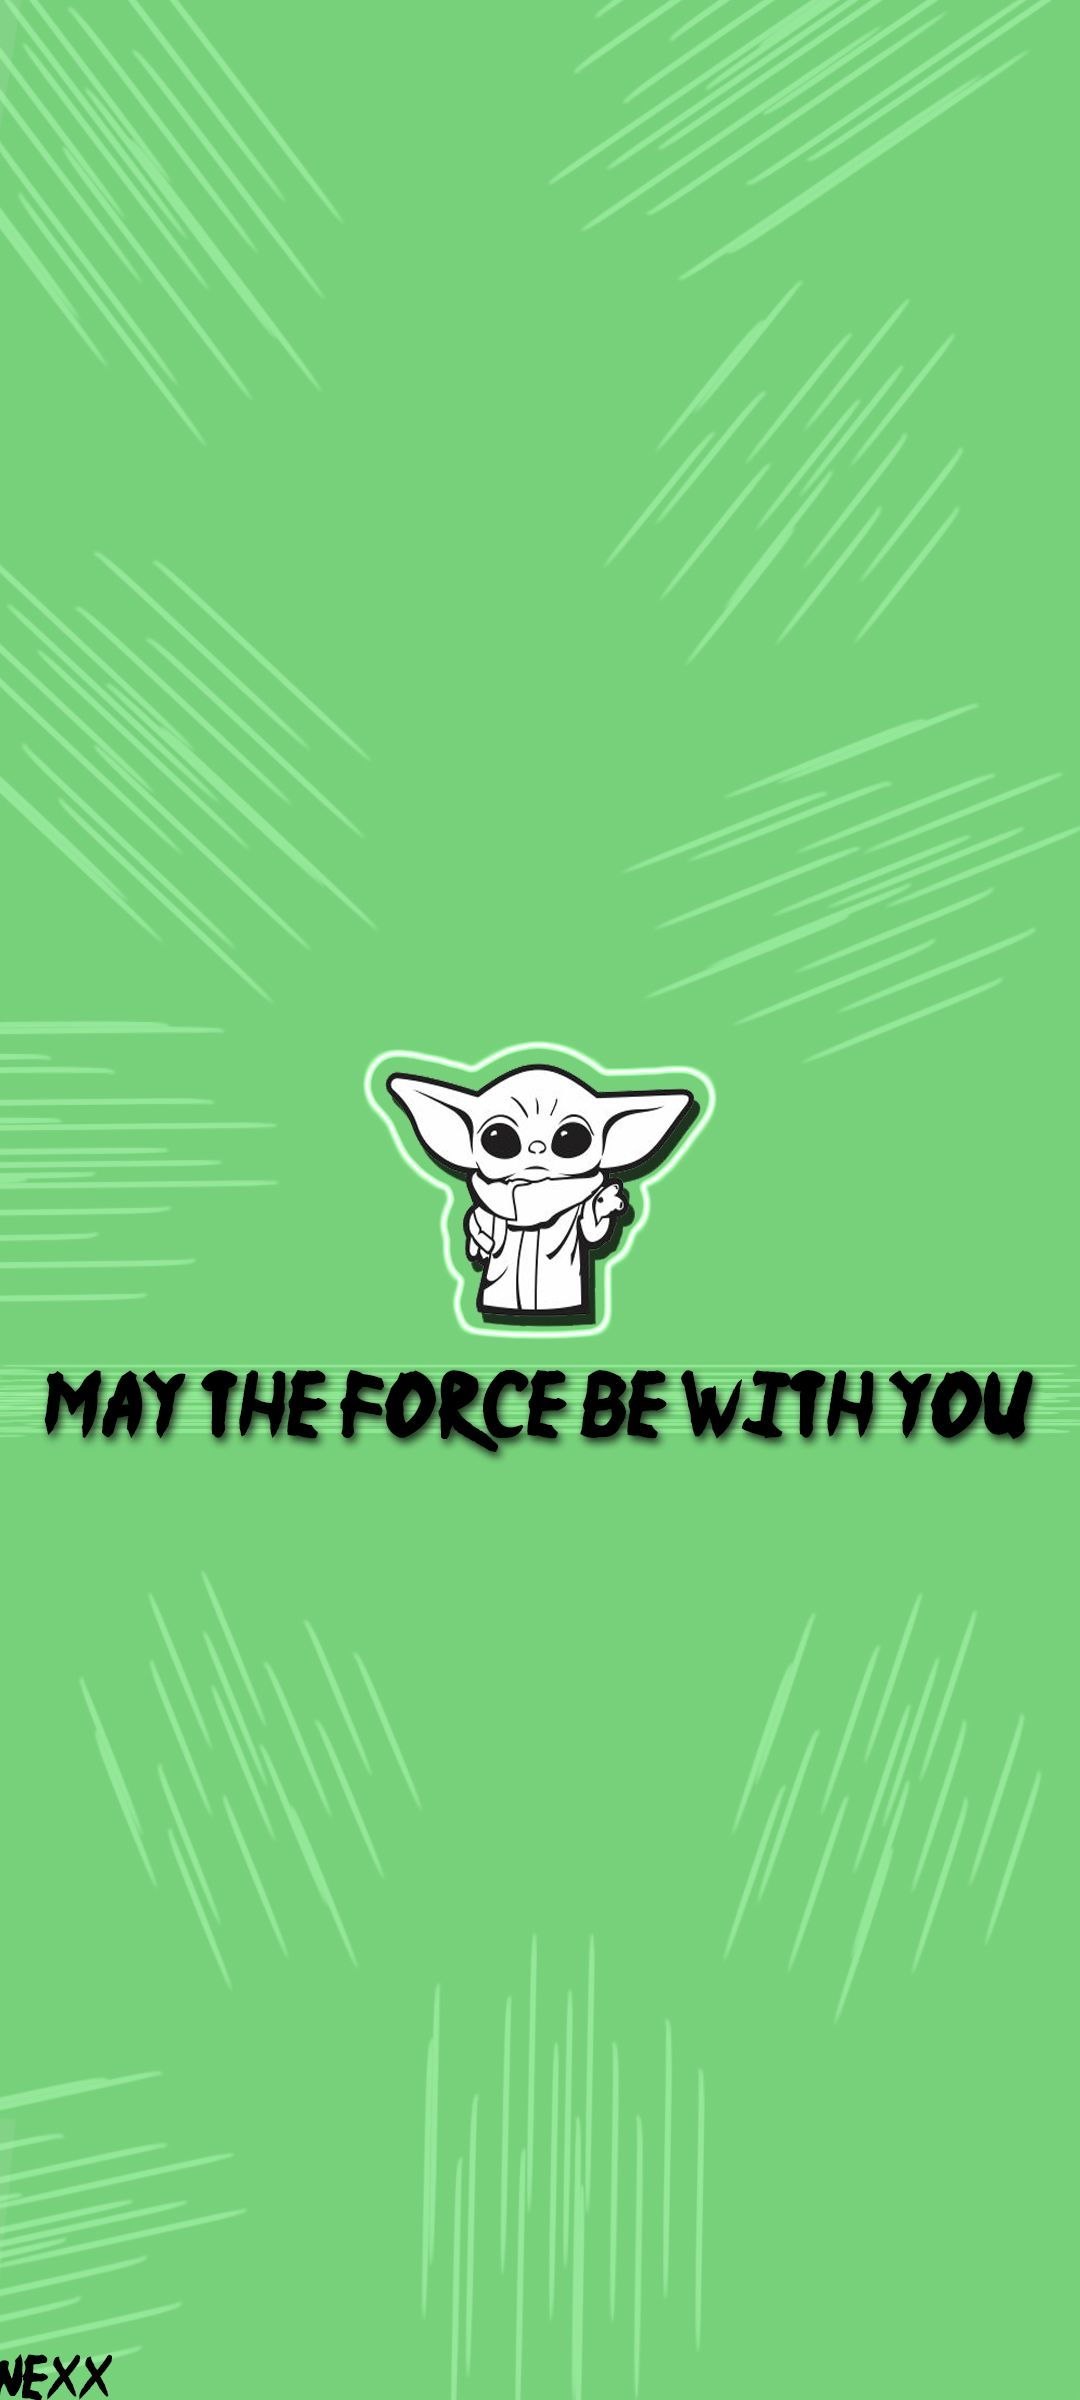 Wallpaper Yoda May The Force Be With You